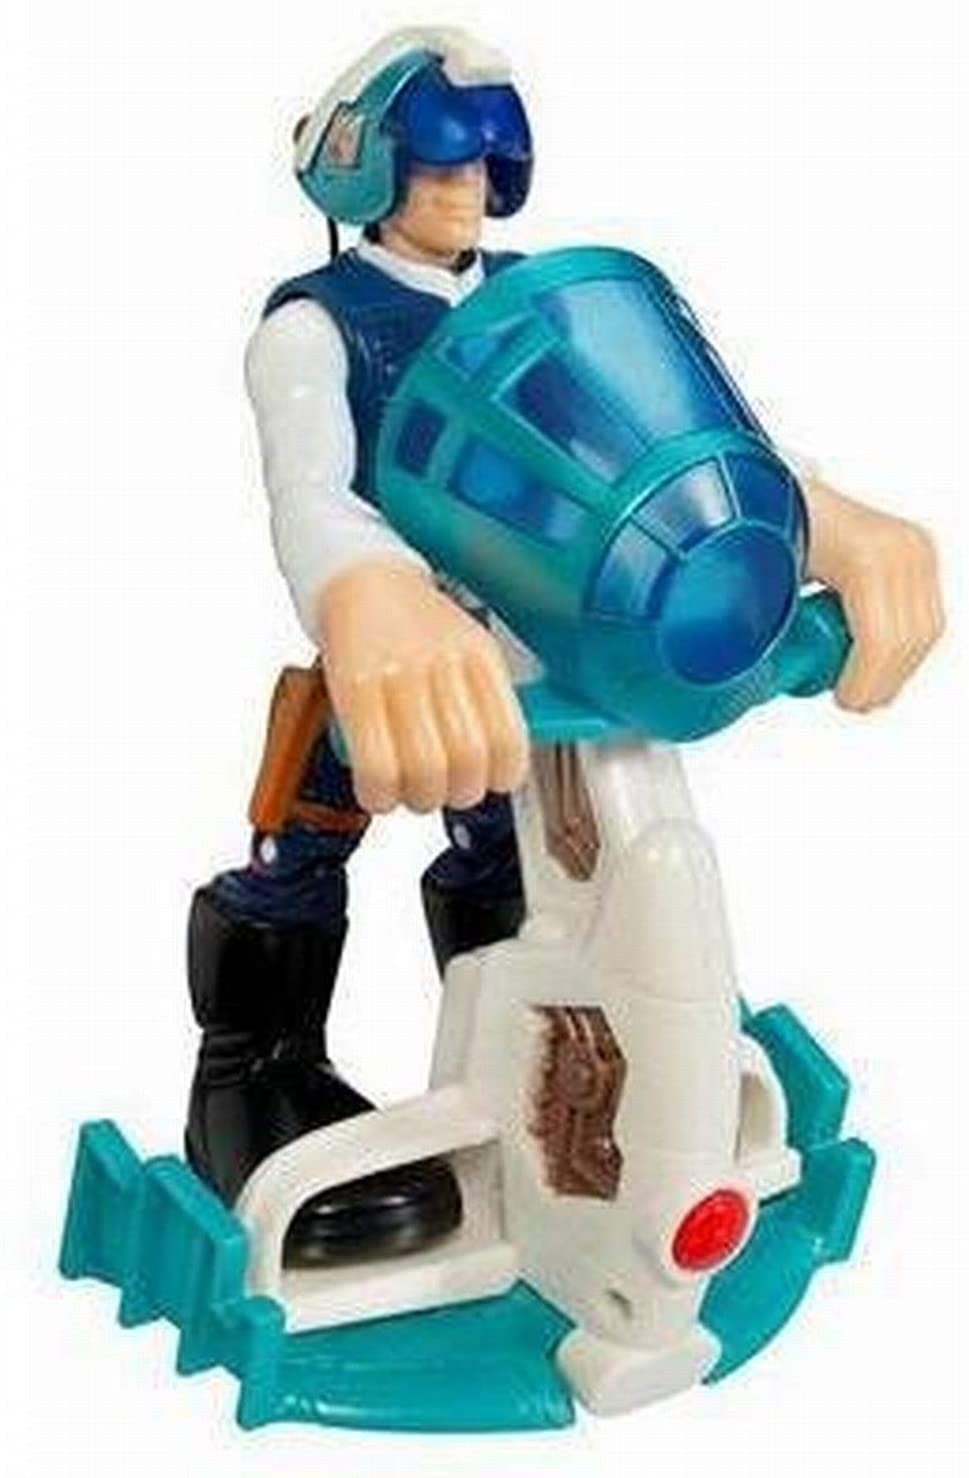 Star Wars Jedi Force Han Solo Chunky Action Figure Playset by Playskool